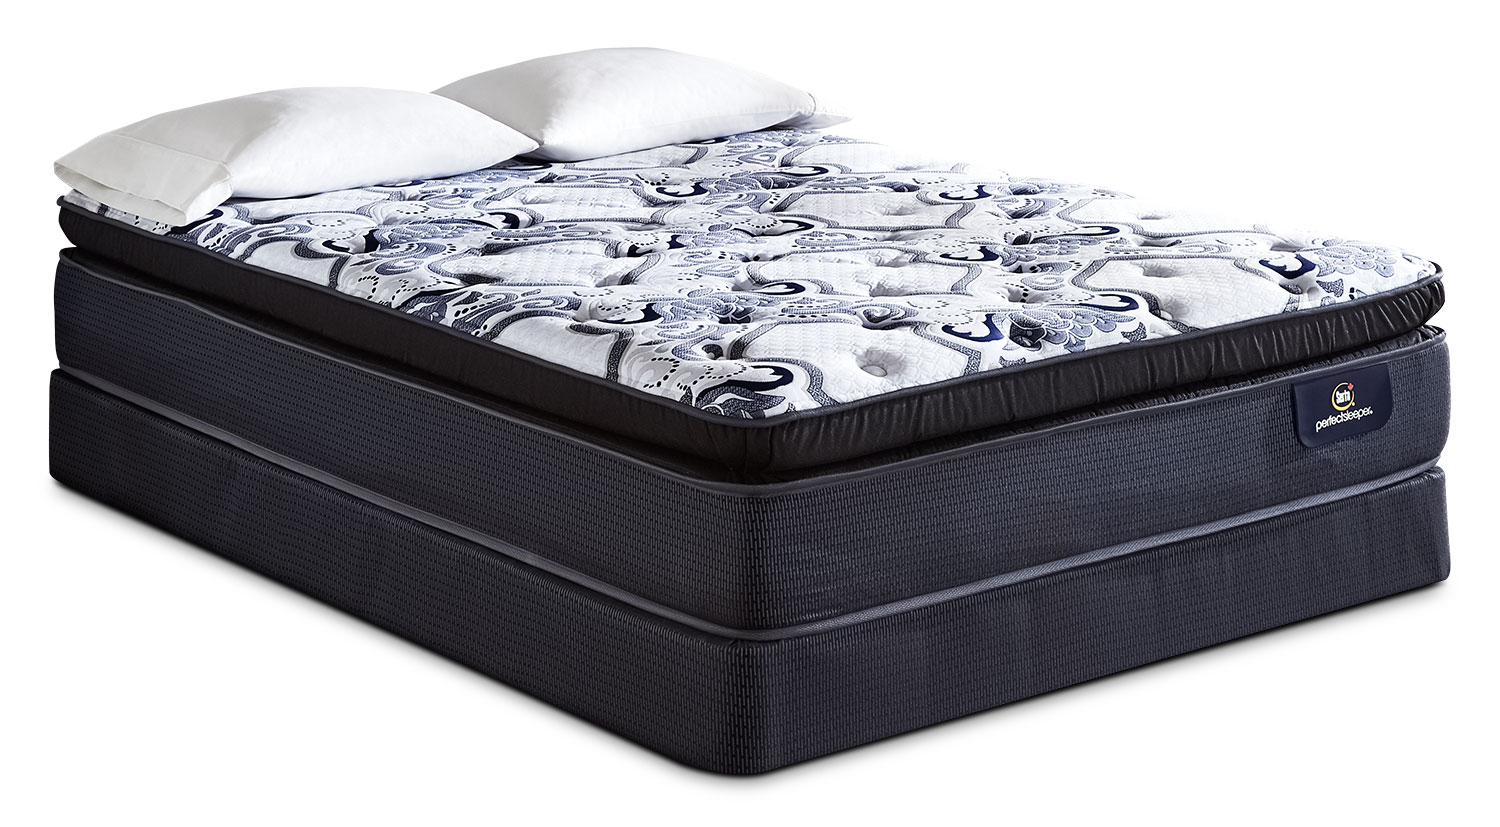 Serta Perfect Sleeper Indiana Super Pillow-Top Plush Queen Mattress Set